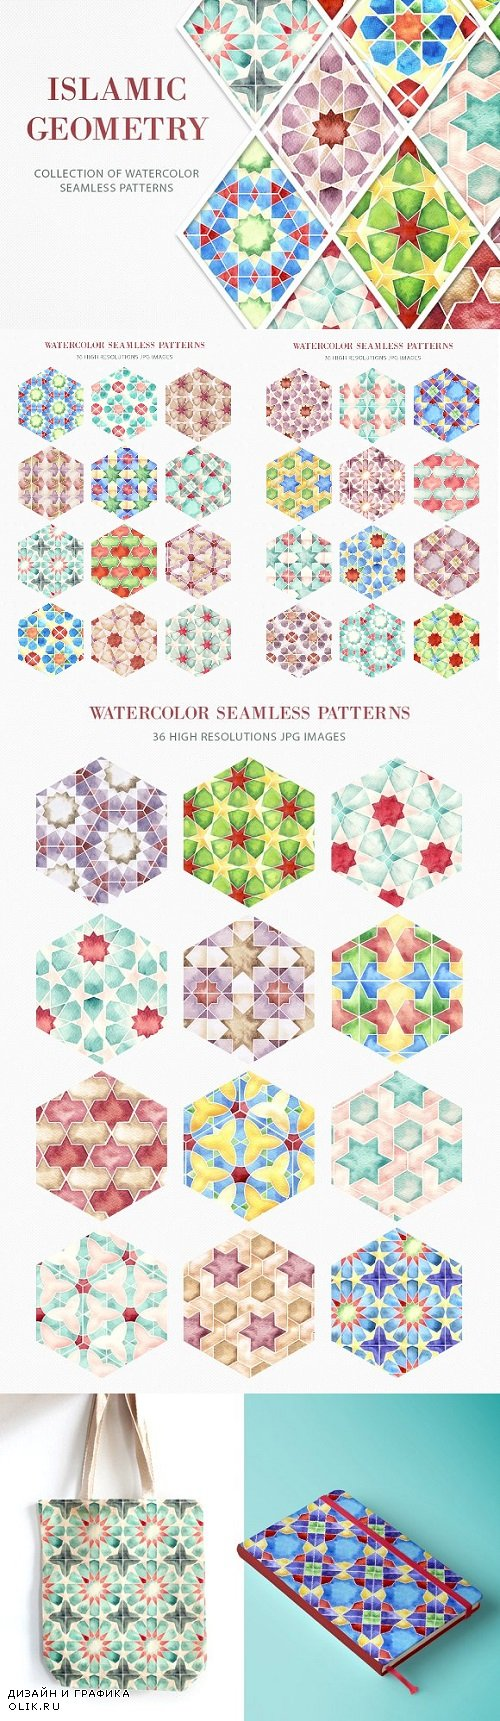 Islamic Geometric Seamless Patterns 1613134